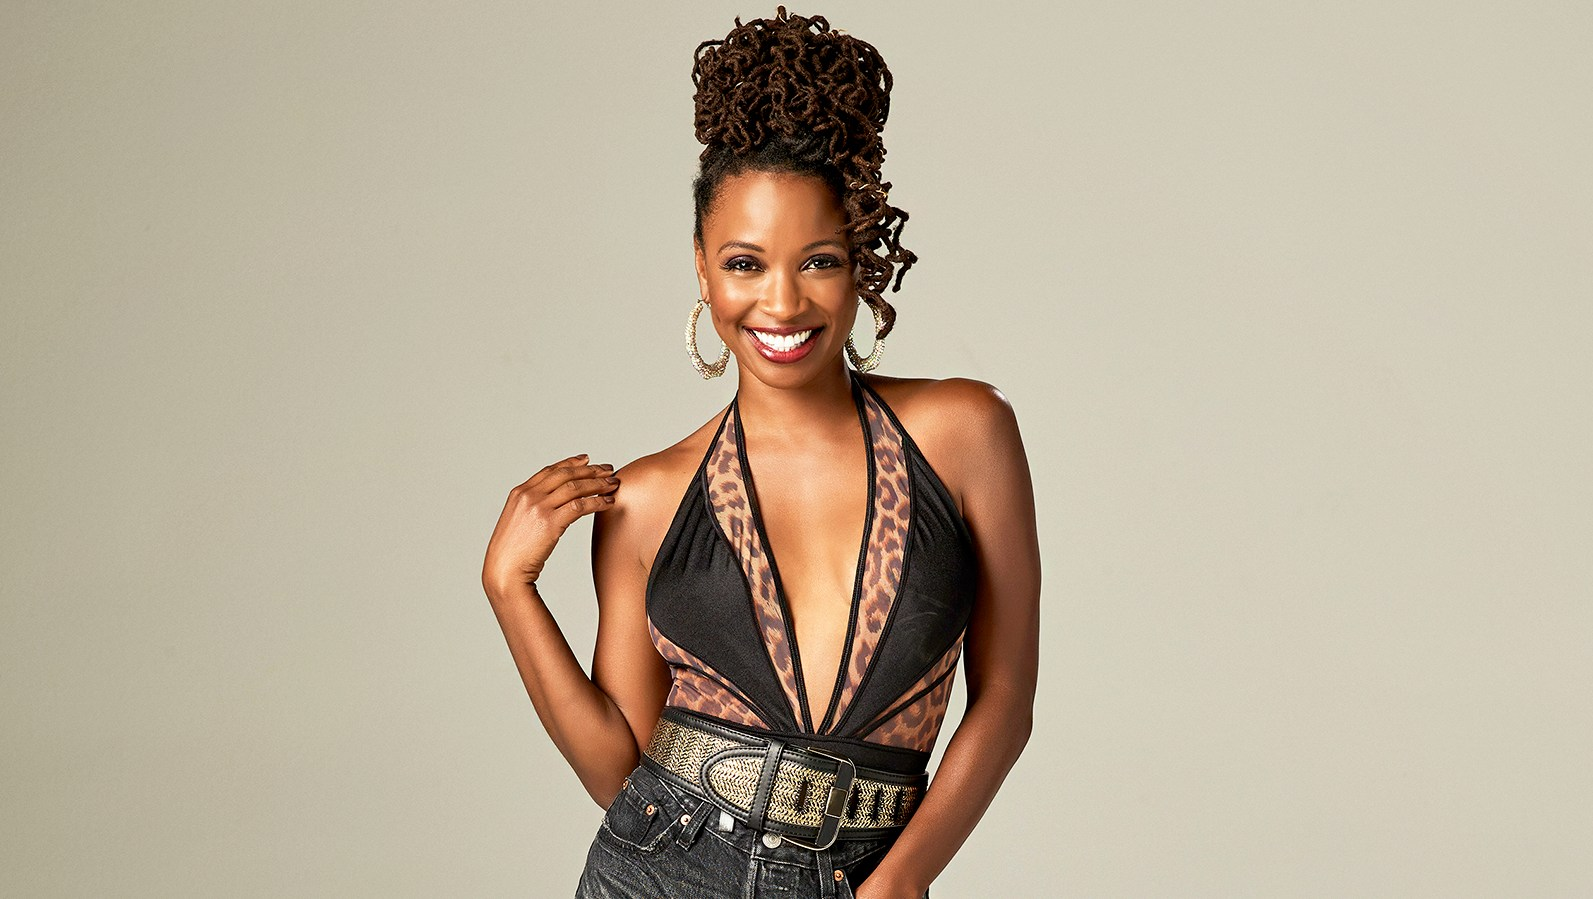 Shanola Hampton as Veronica Fisher in 'Shameless'